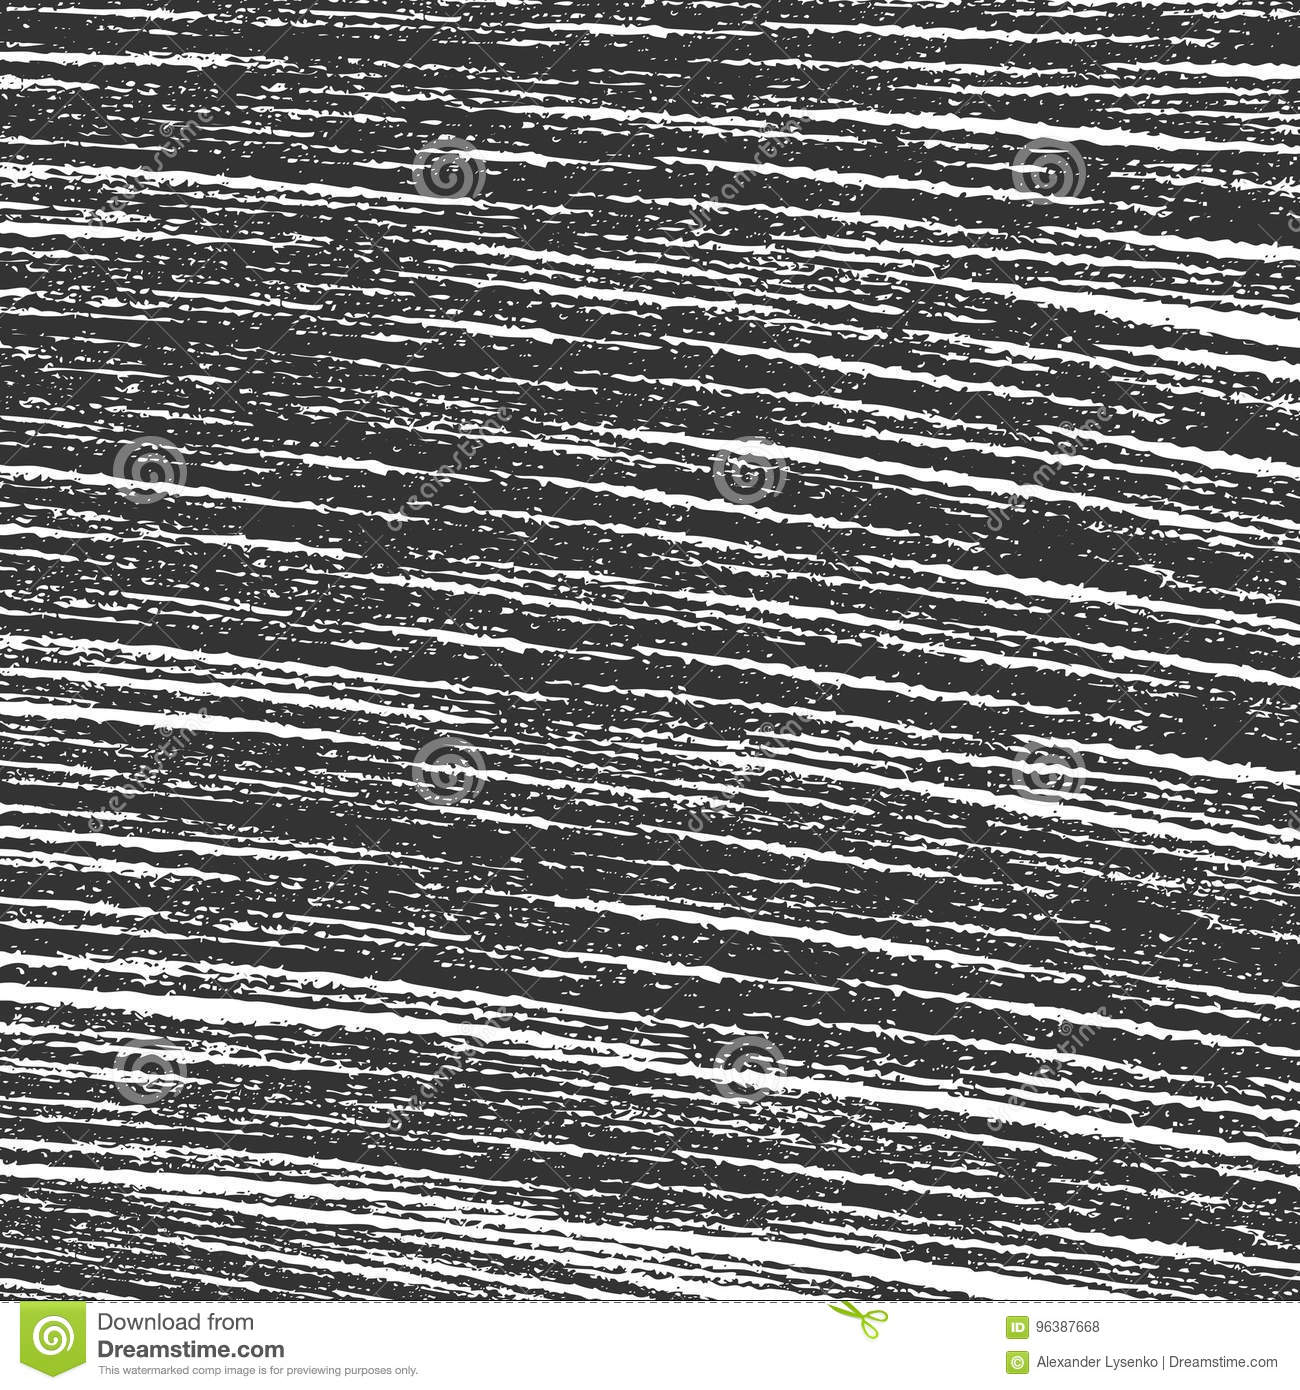 Scratch sketch grunge black and white texture abstract line vector illustration